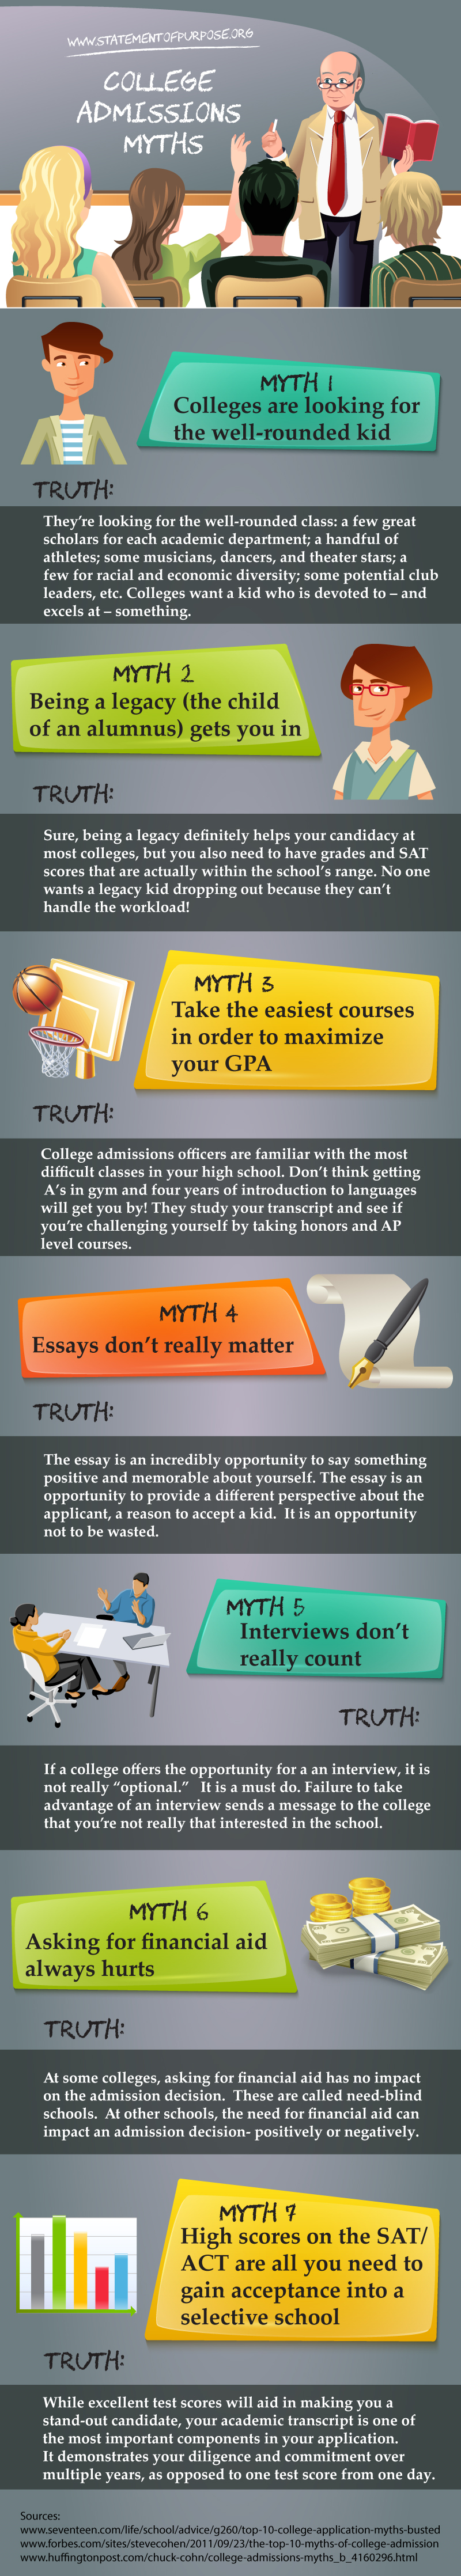 college admissions myths